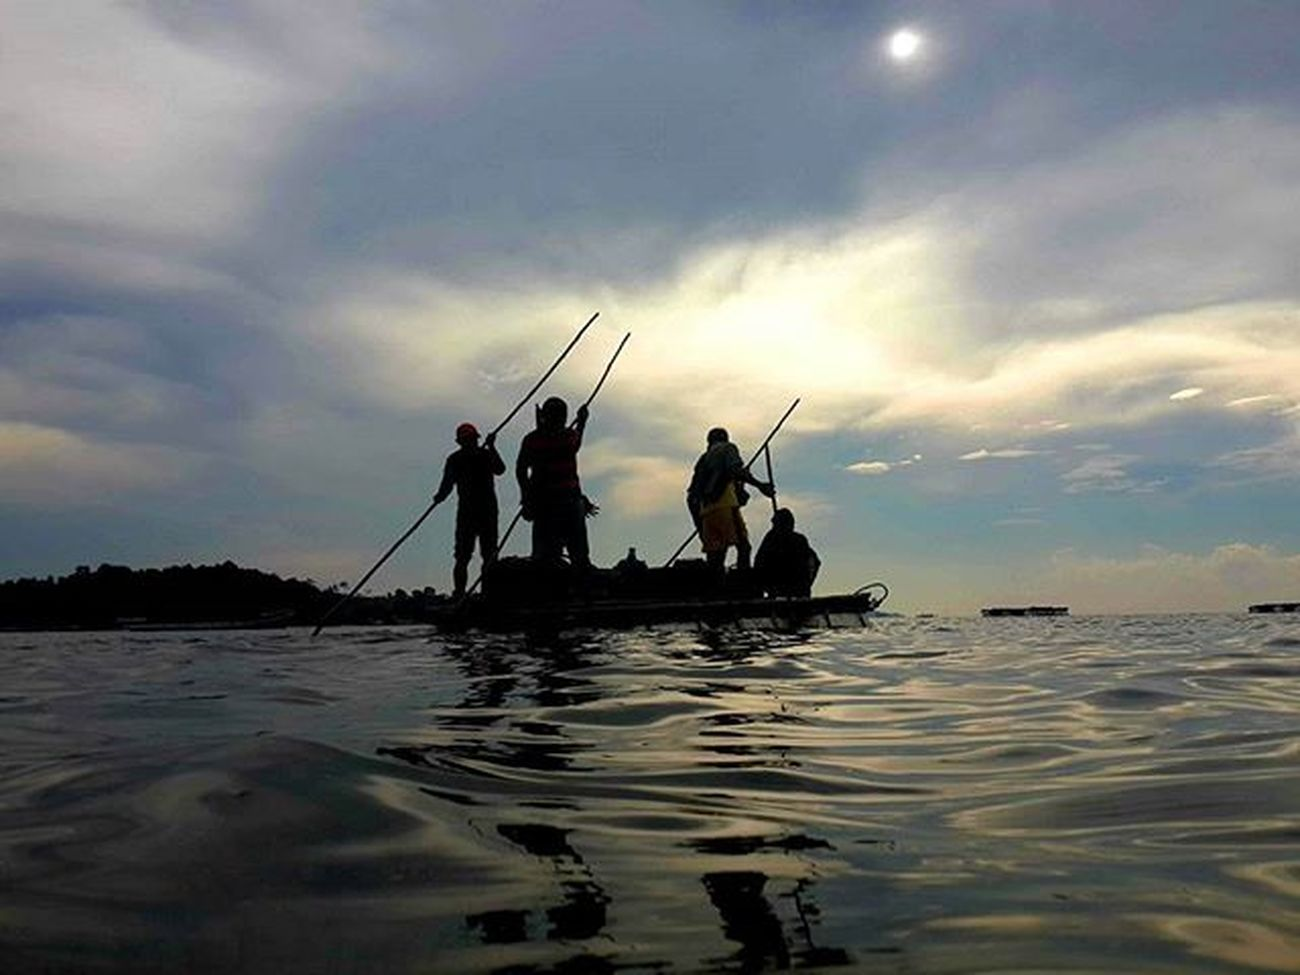 Adventure Sea Raft Adventure Nature Sunset Fishing Beautiful Natgeopeople Pengudangvillage Bintanisland Indonesiaindah